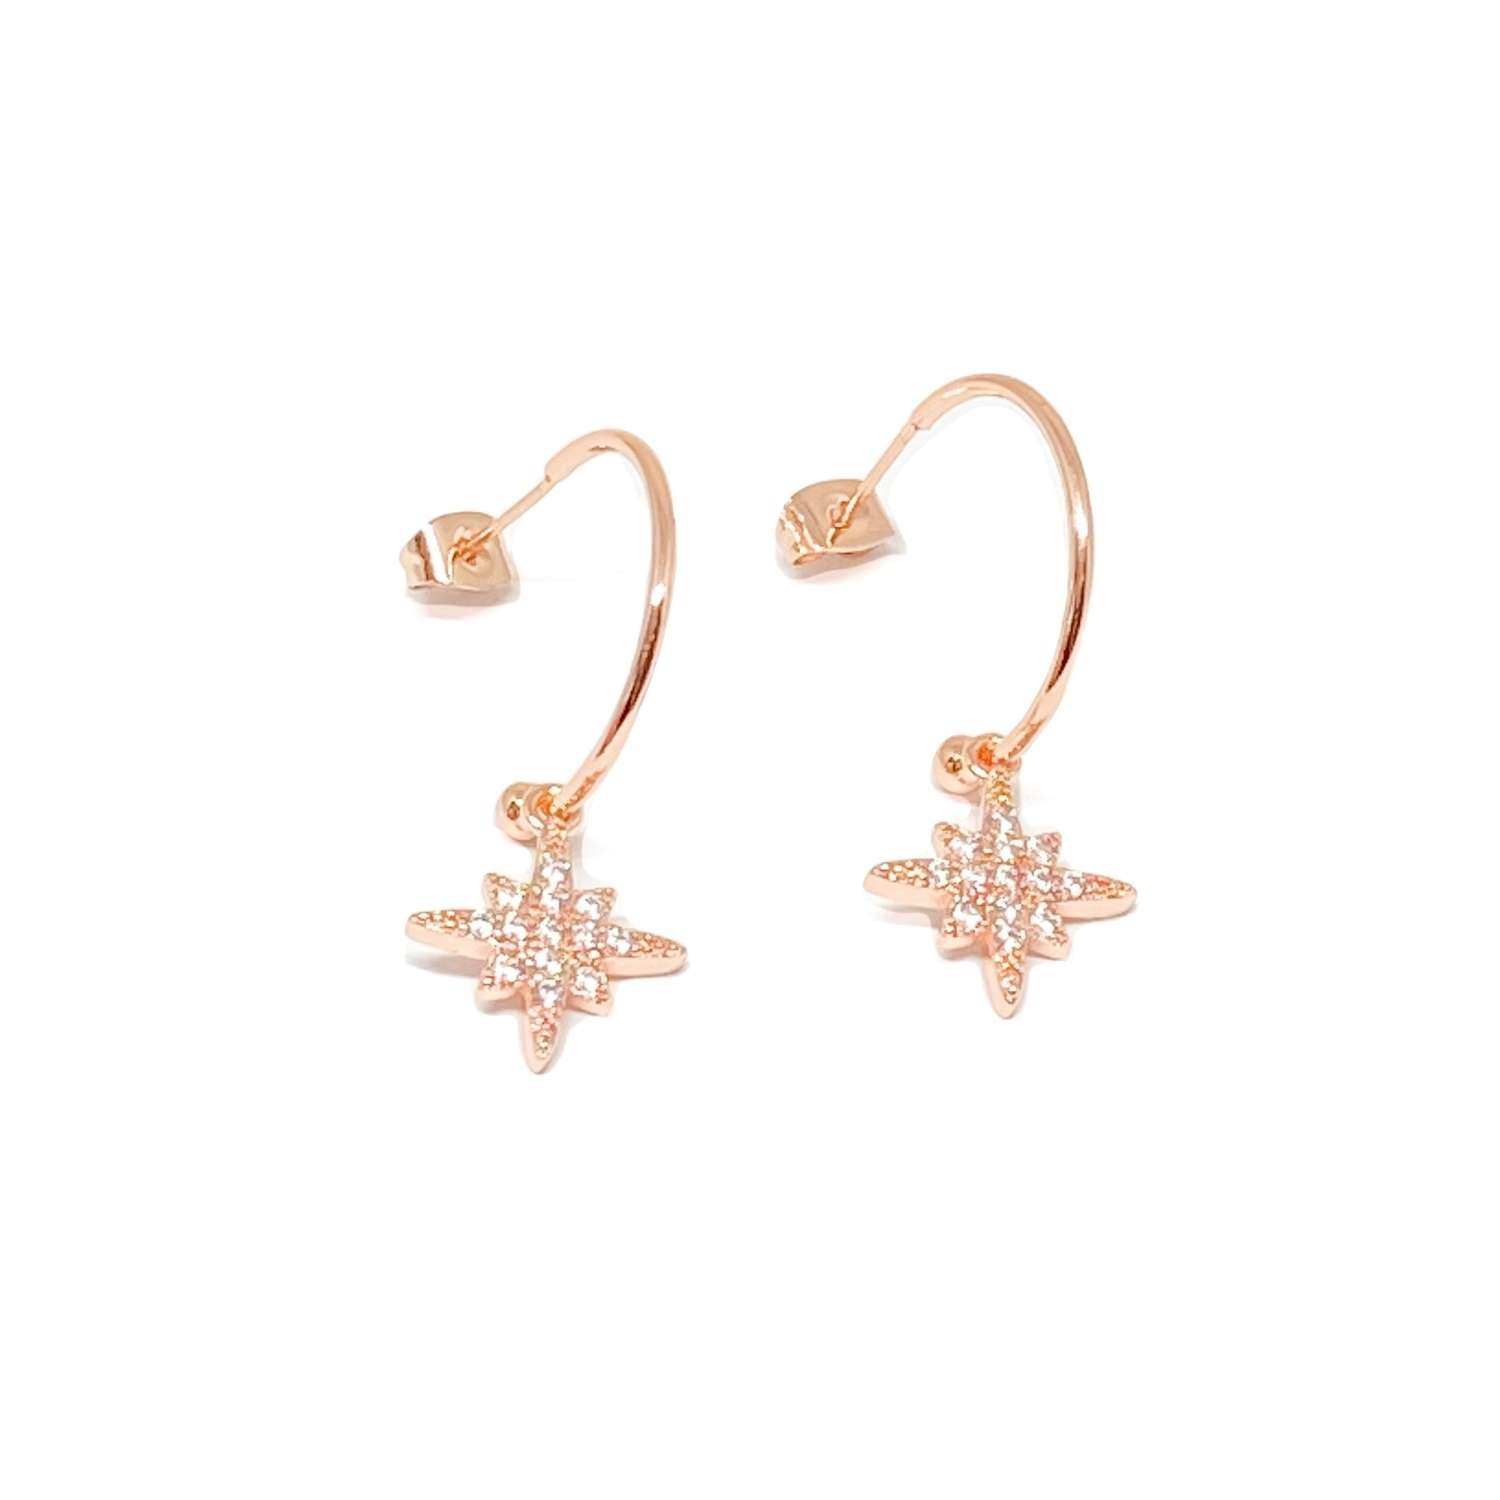 Krista Sterling Silver Hoop Earrings - Rose Gold